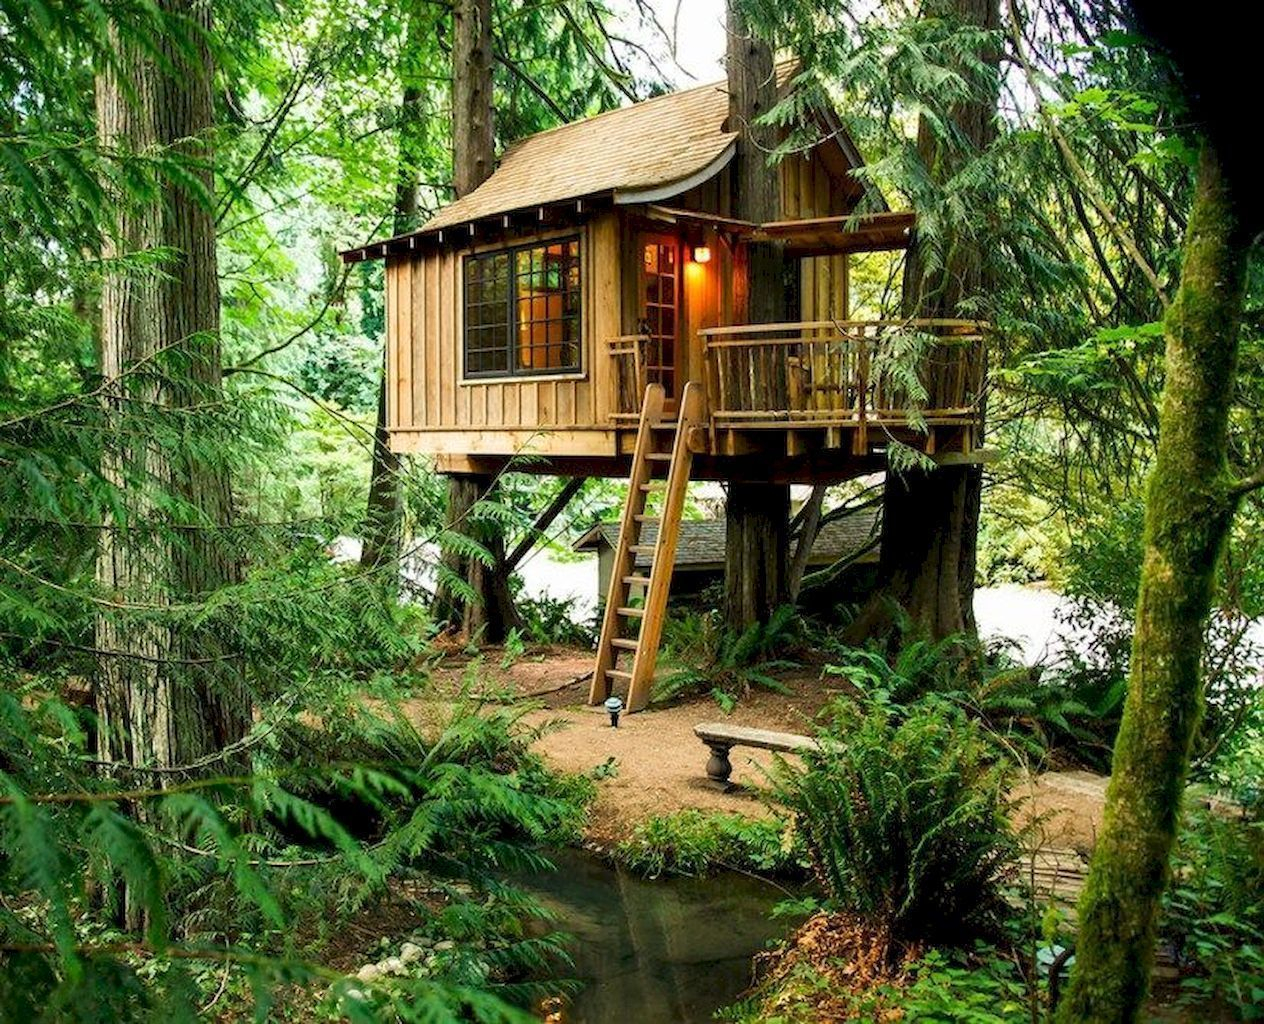 Rustic Diy Tree Houses Design Ideas For Your Kids And Family05